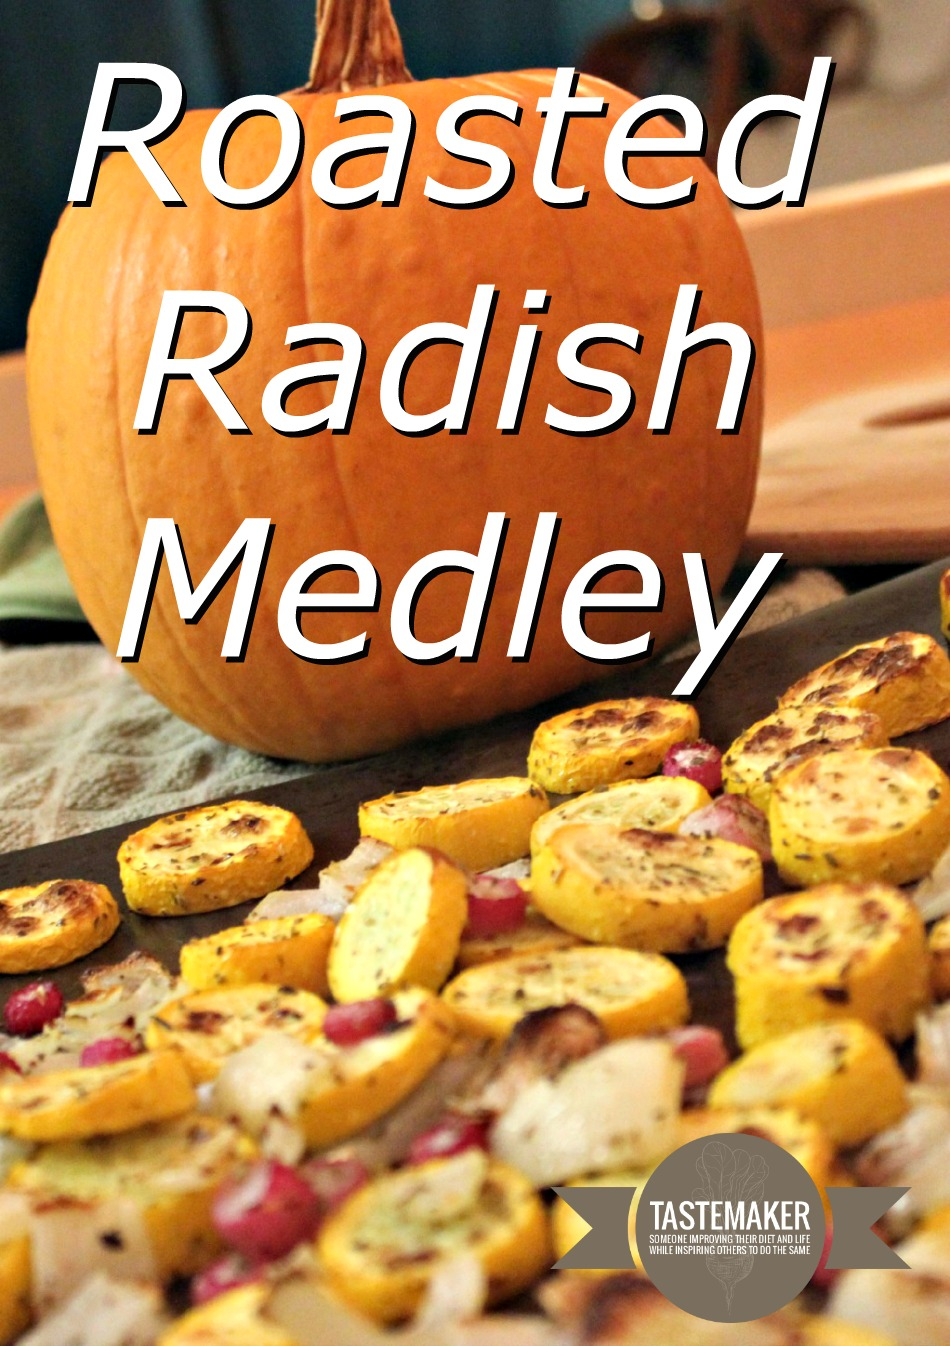 Roasted Radish Medley